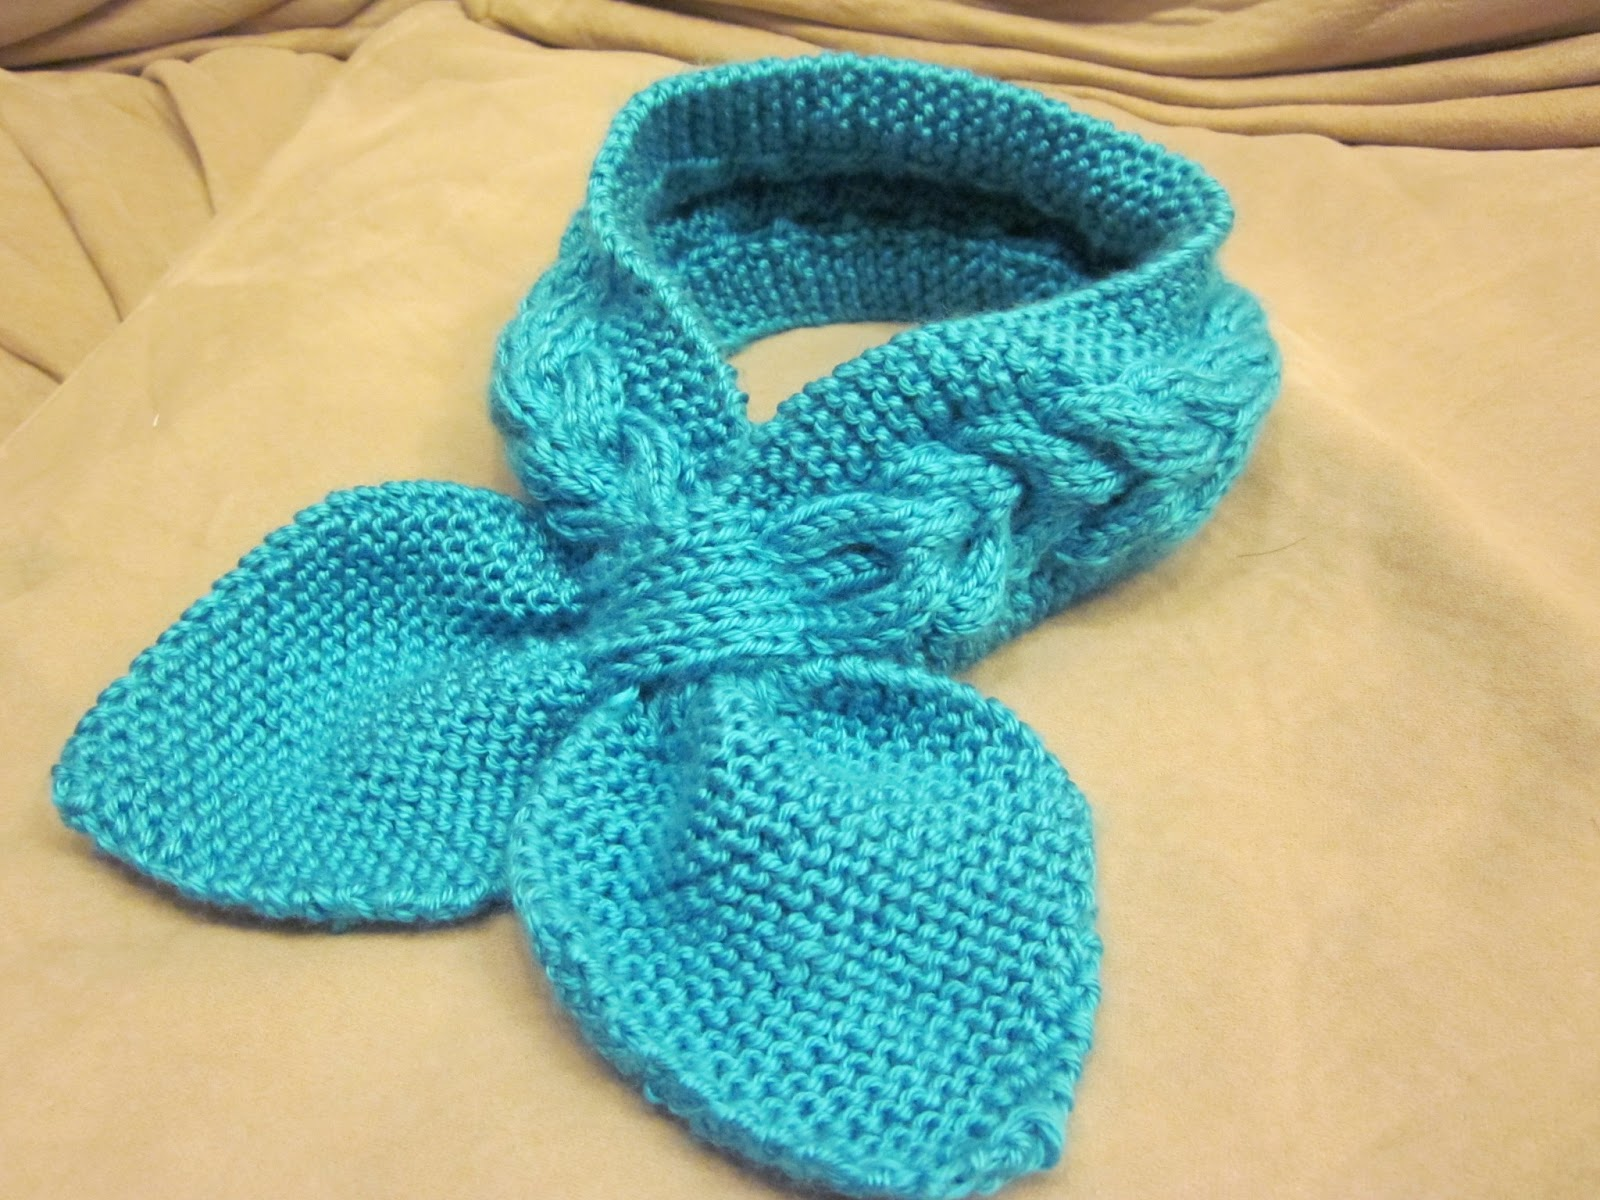 Loving Blueberry: Knitted Neck Scarf O(≧∇≦)O